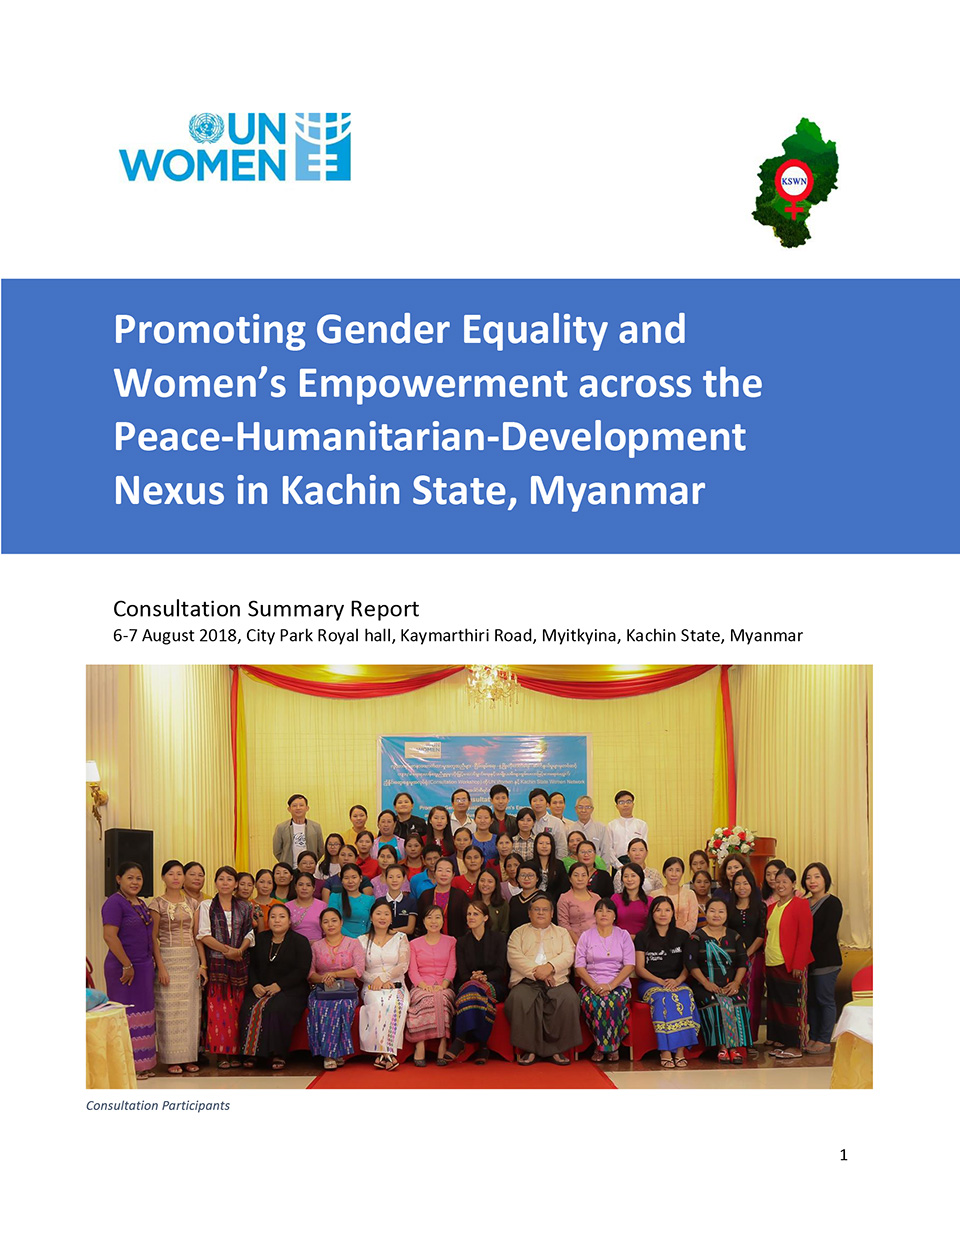 Promoting Gender Equality and Women's Empowerment across the Peace-Humanitarian-Development Nexus in Kachin State, Myanmar